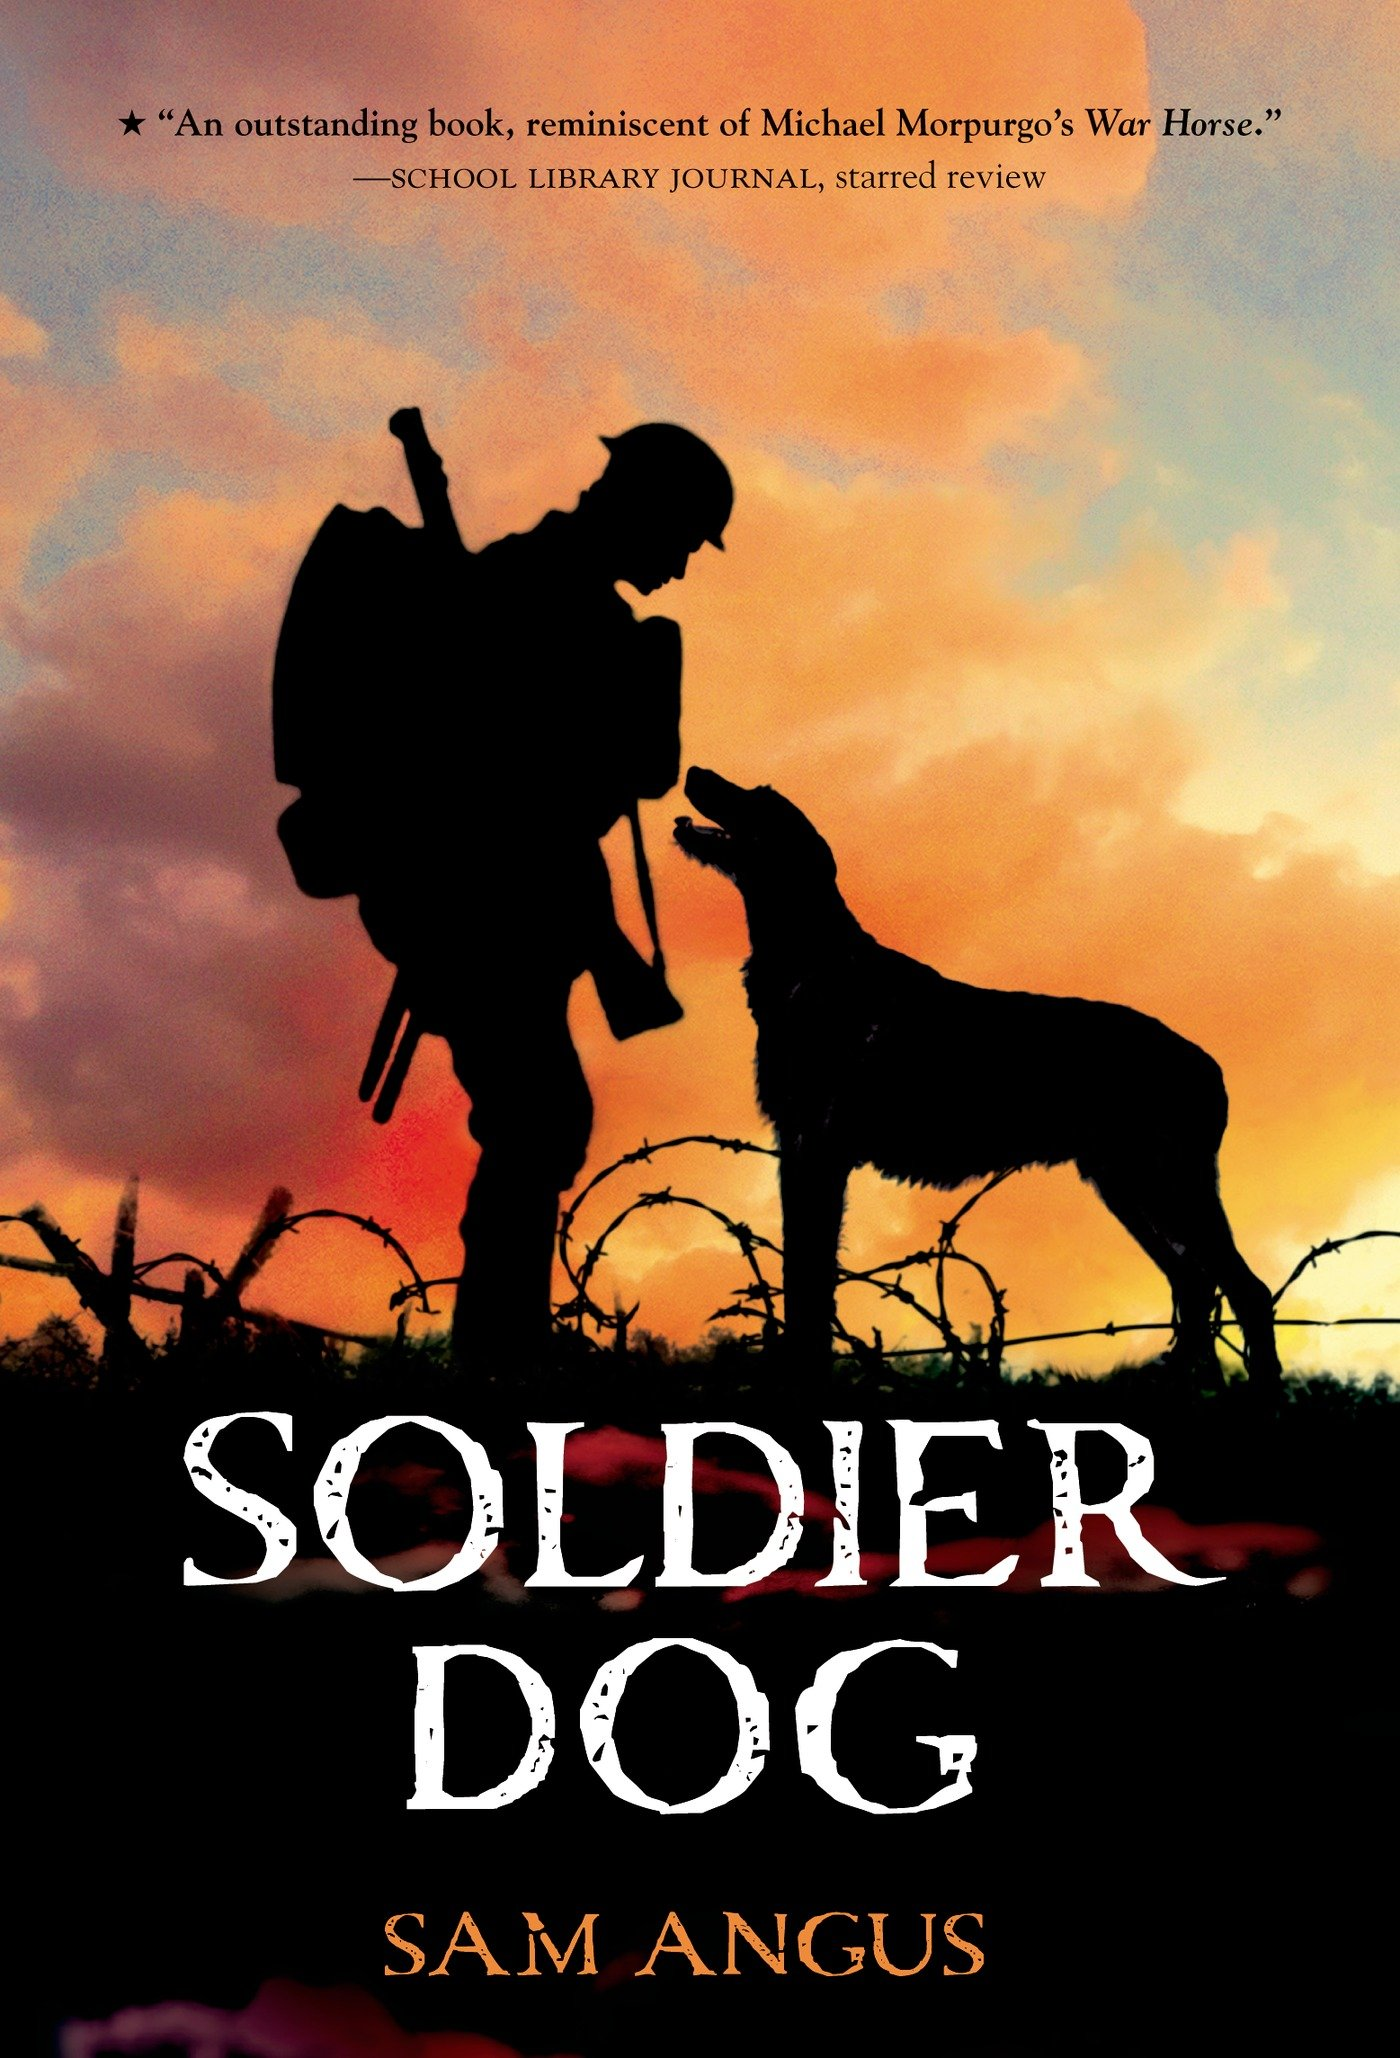 Soldier Dog Sam Angus product image